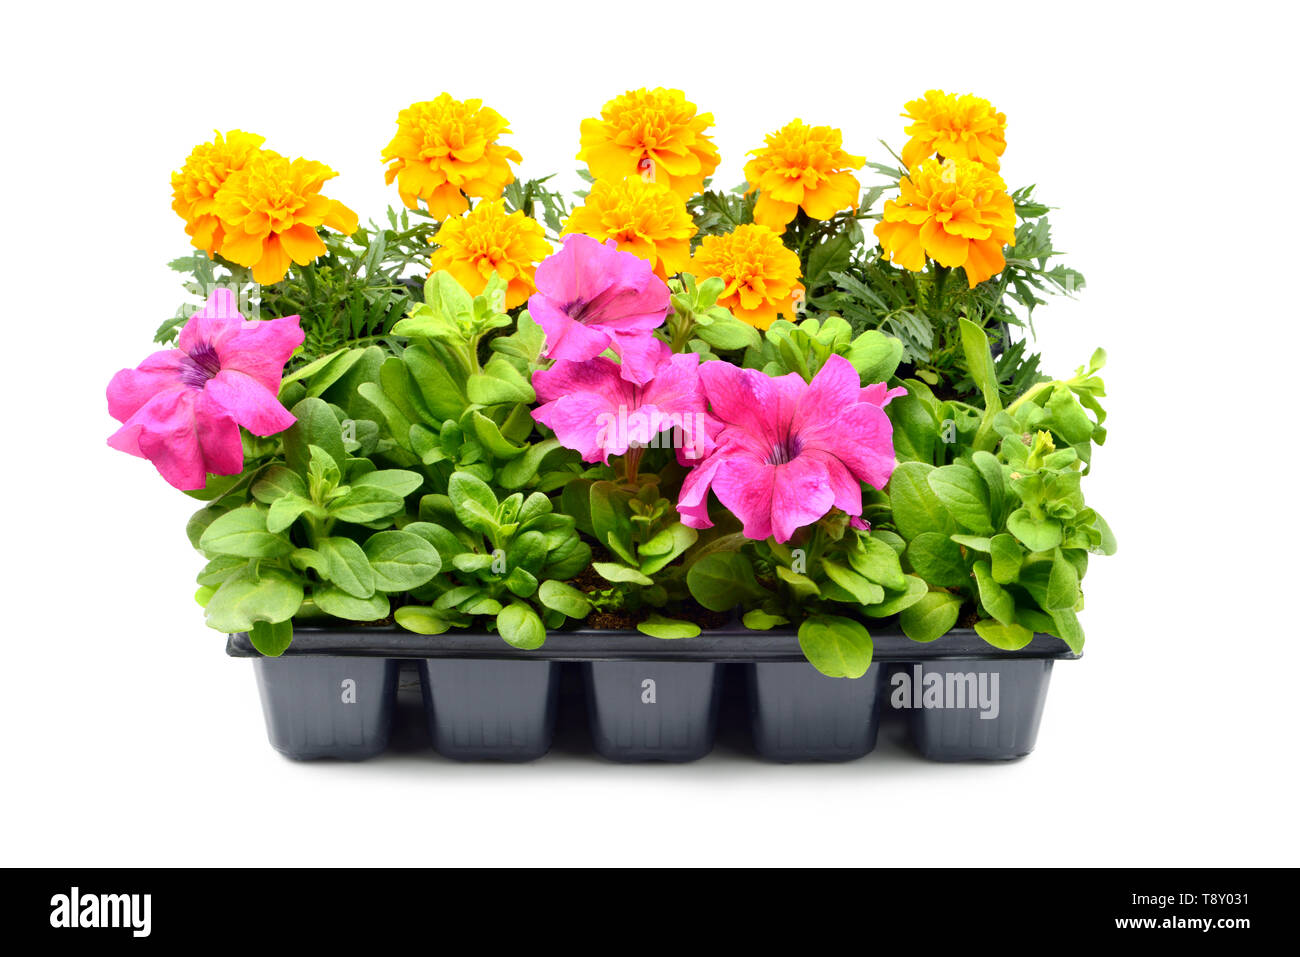 Tagetes and petunia flower tray box on white isolated background. Stock Photo